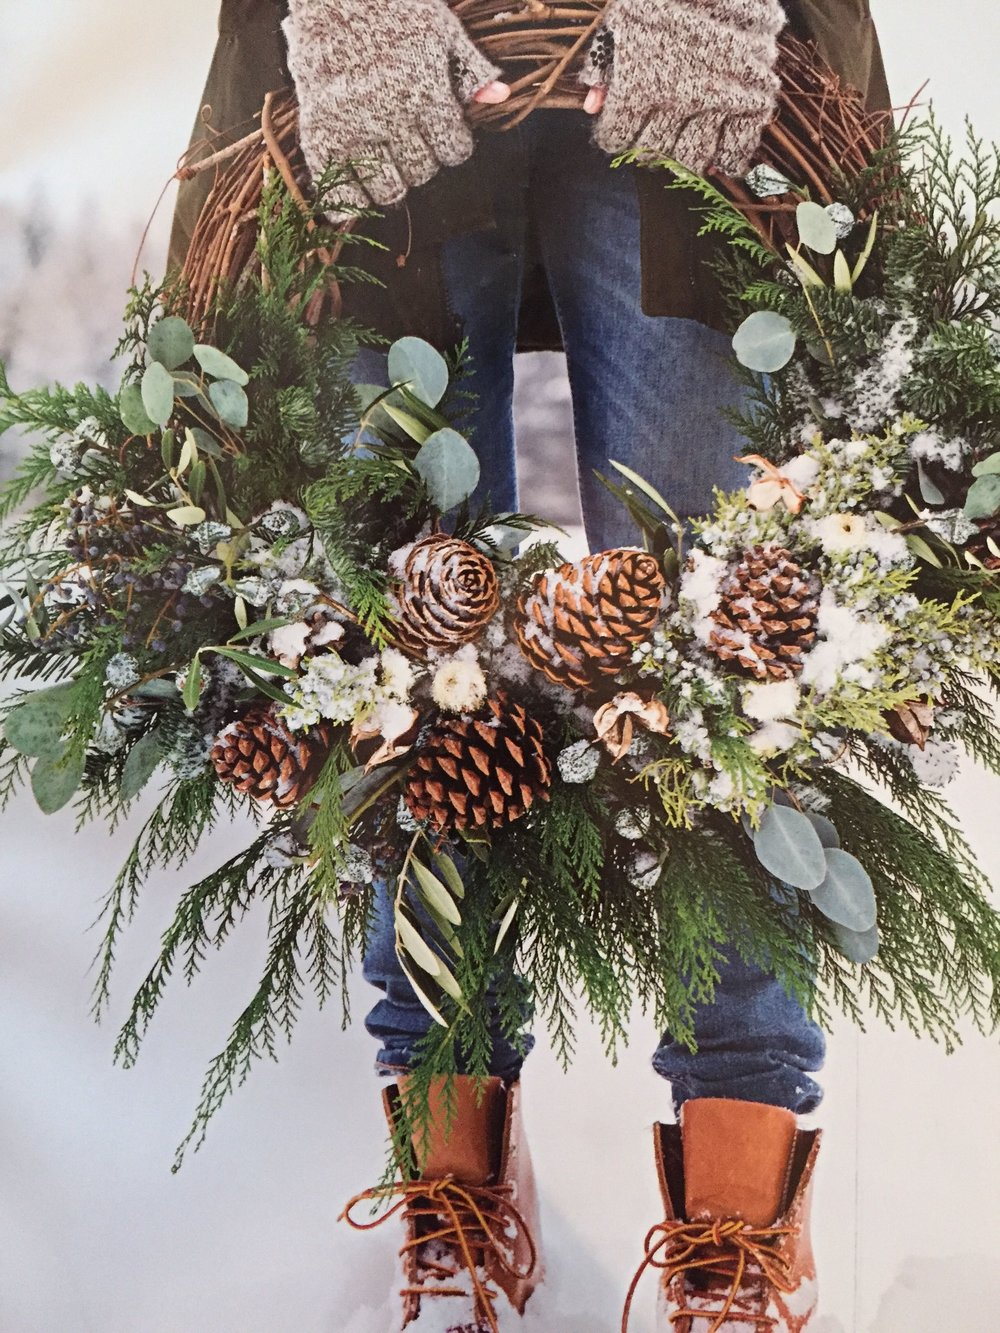 Add eucalyptus to your homemade wreath for a beautiful festive aroma